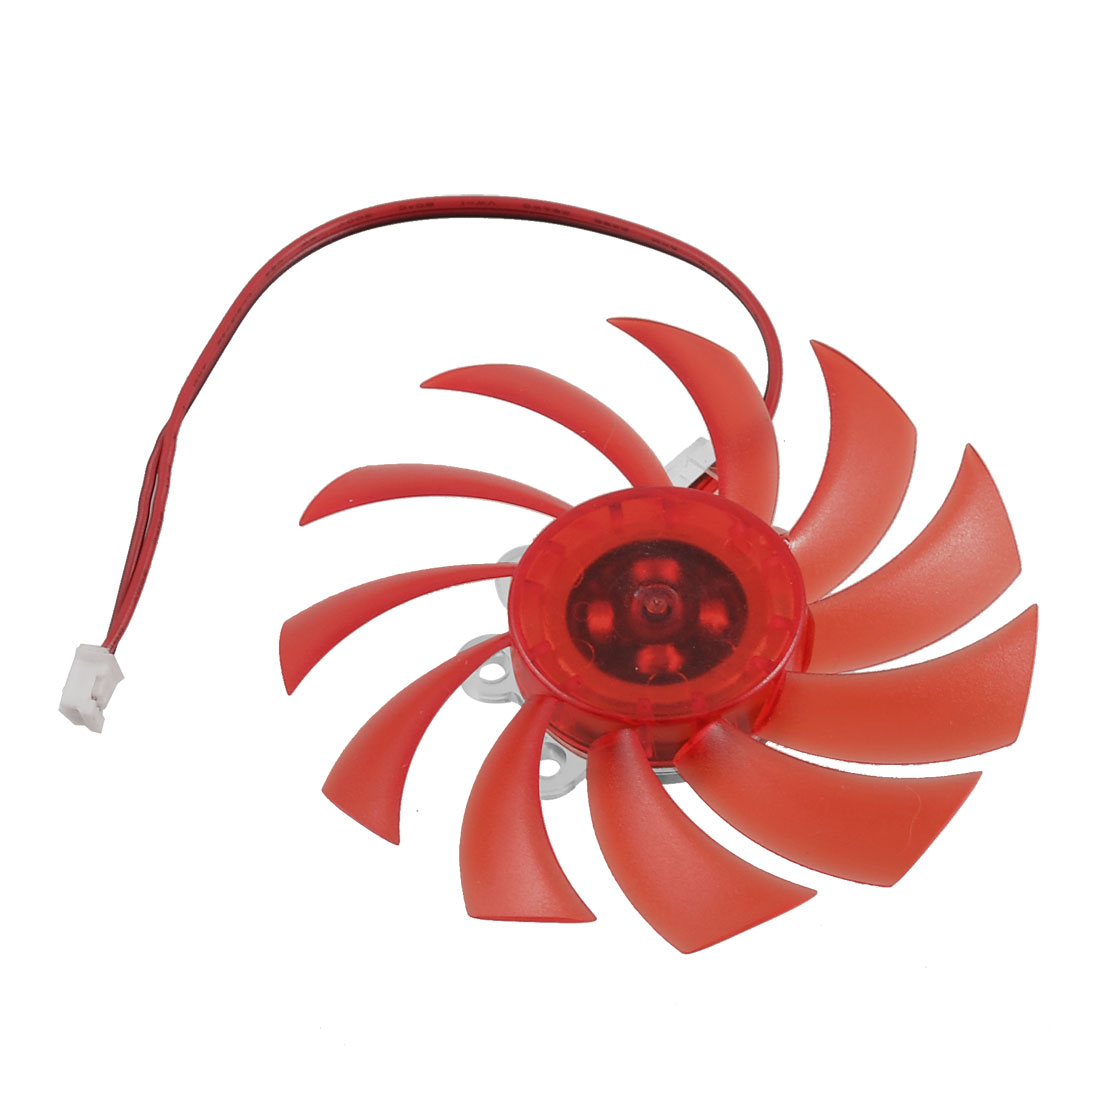 2 Pole Connector 11 Flabellums Plastic PC Video Card Heatsink Cooling Cooler Fan Red